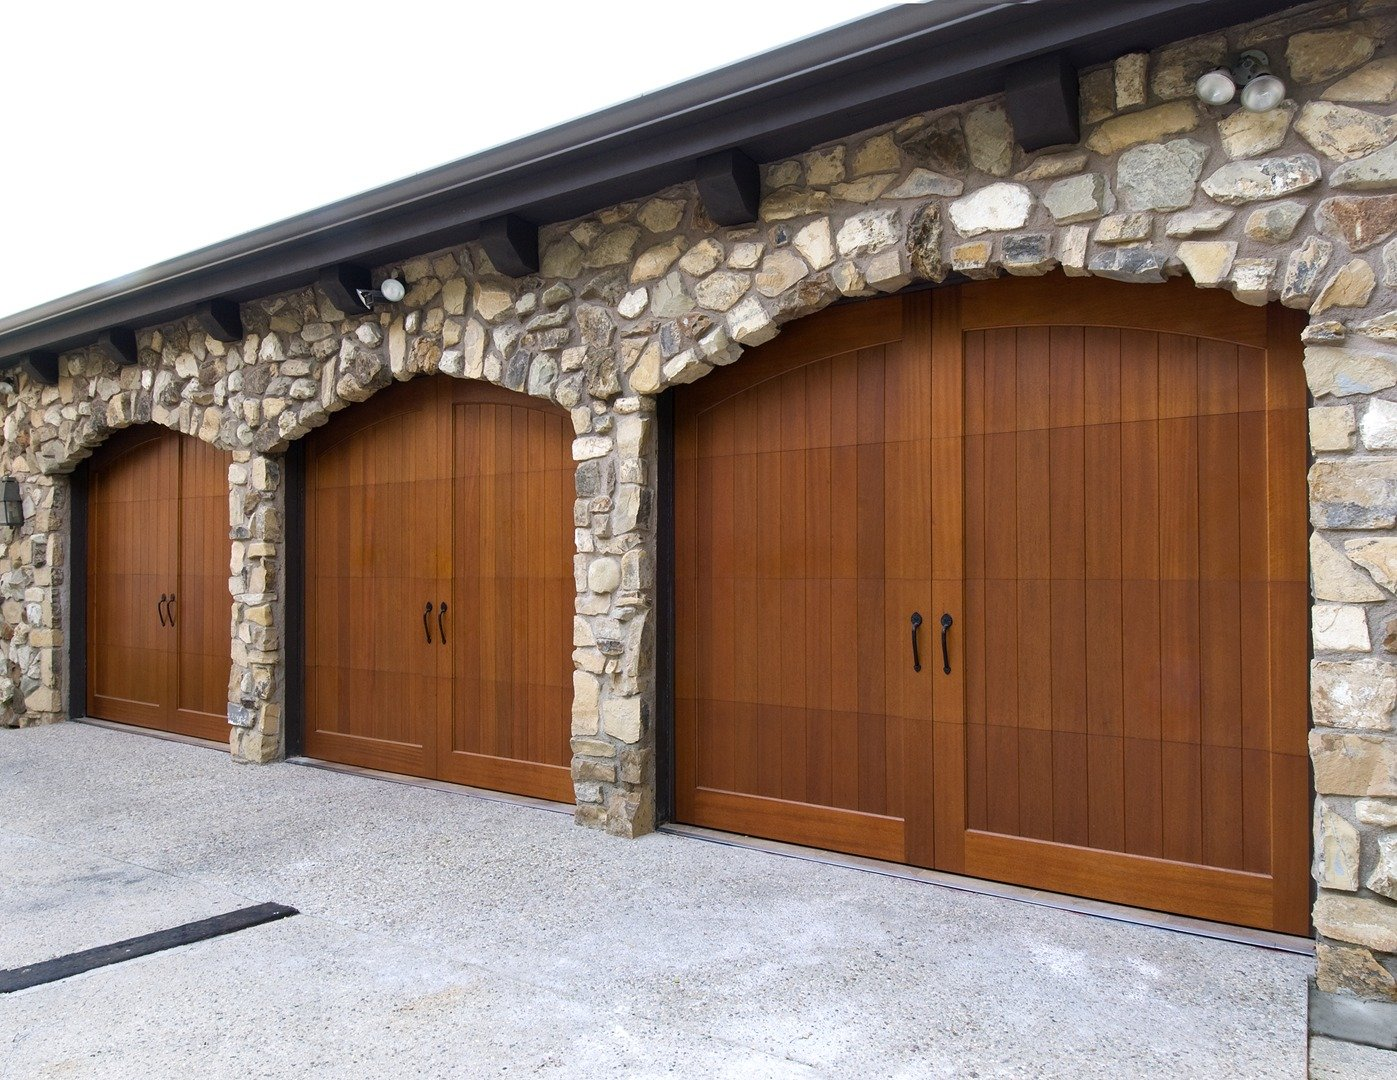 now doors construction pinnacle on available modern of banefits panels trac state style garage the many charm art with carriage door v martin groove